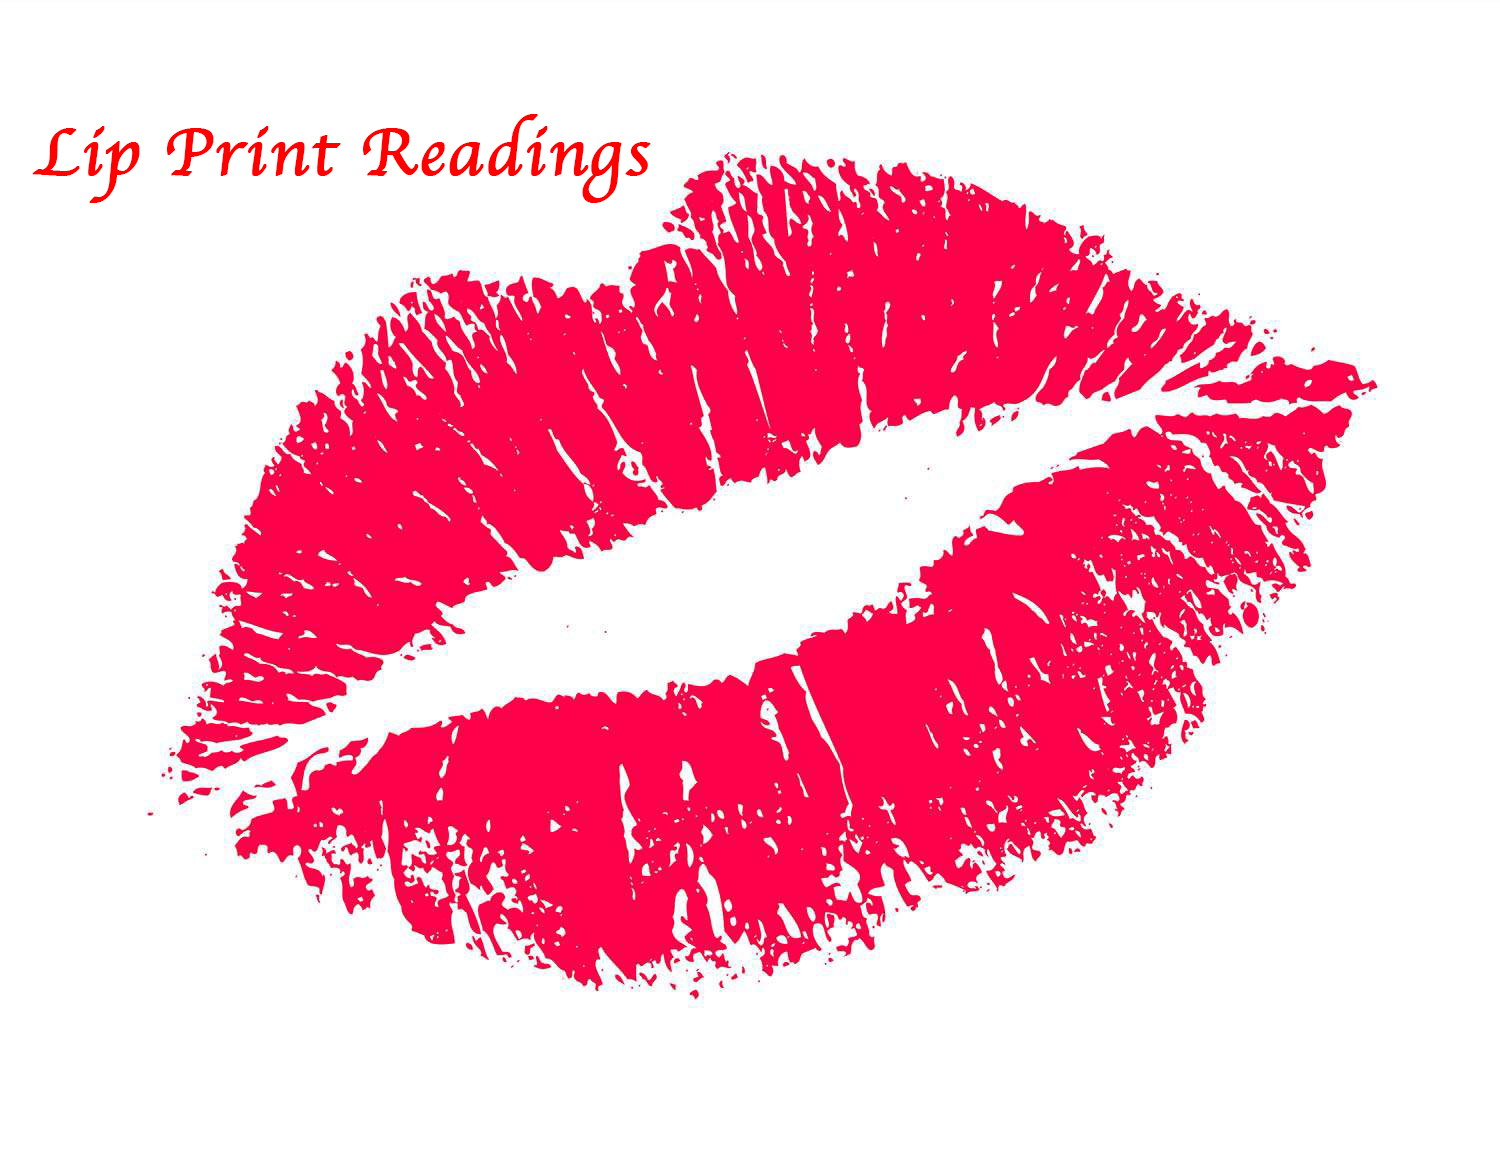 Lip Print Readings by Lady Elizabeth